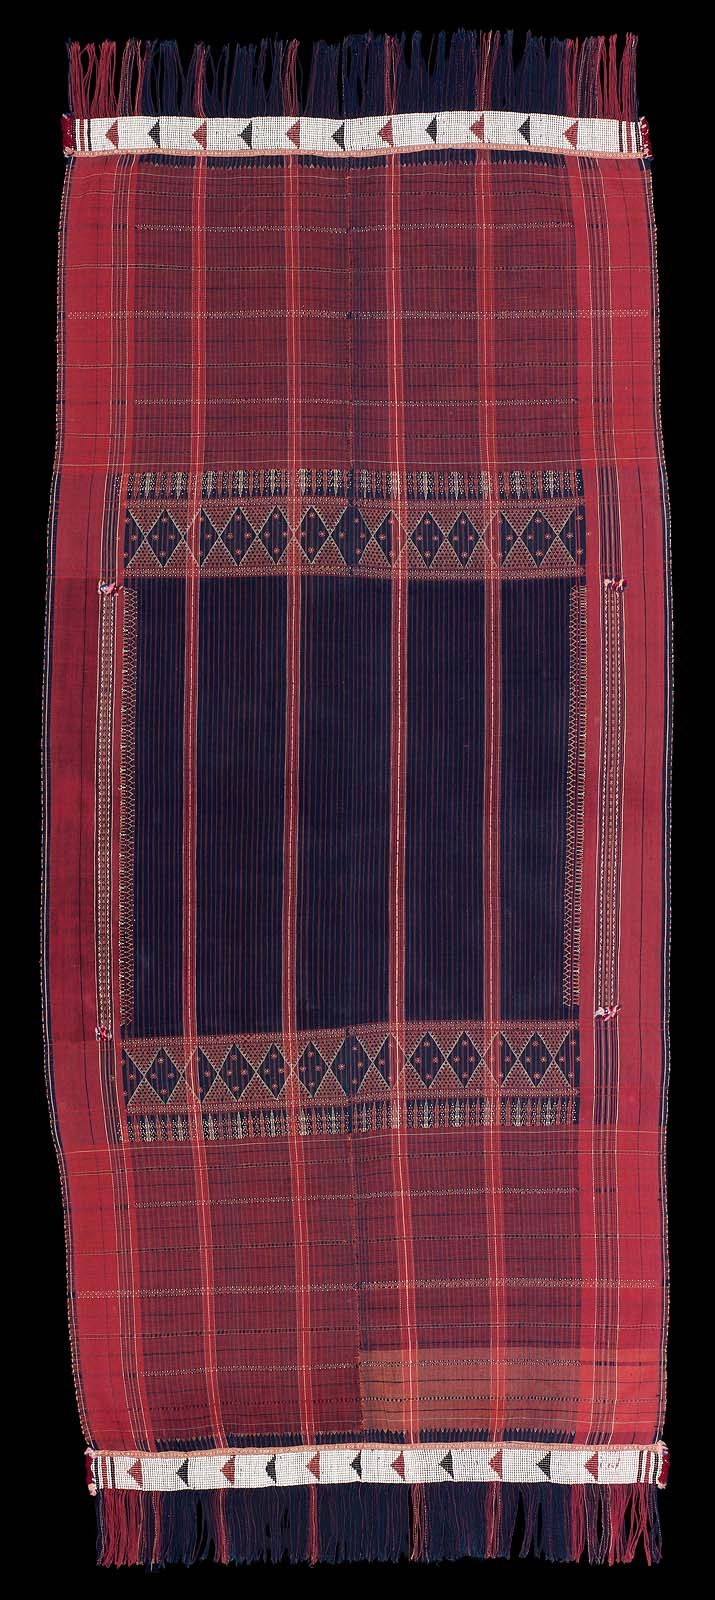 Indonesia | Sumatra, Angkola region | Ceremonial upper body wrapper (ulos godang) | early 20th century | 99 x 218 cm (39 x 85 13/16 in.) | Museum of Fine Arts, Boston